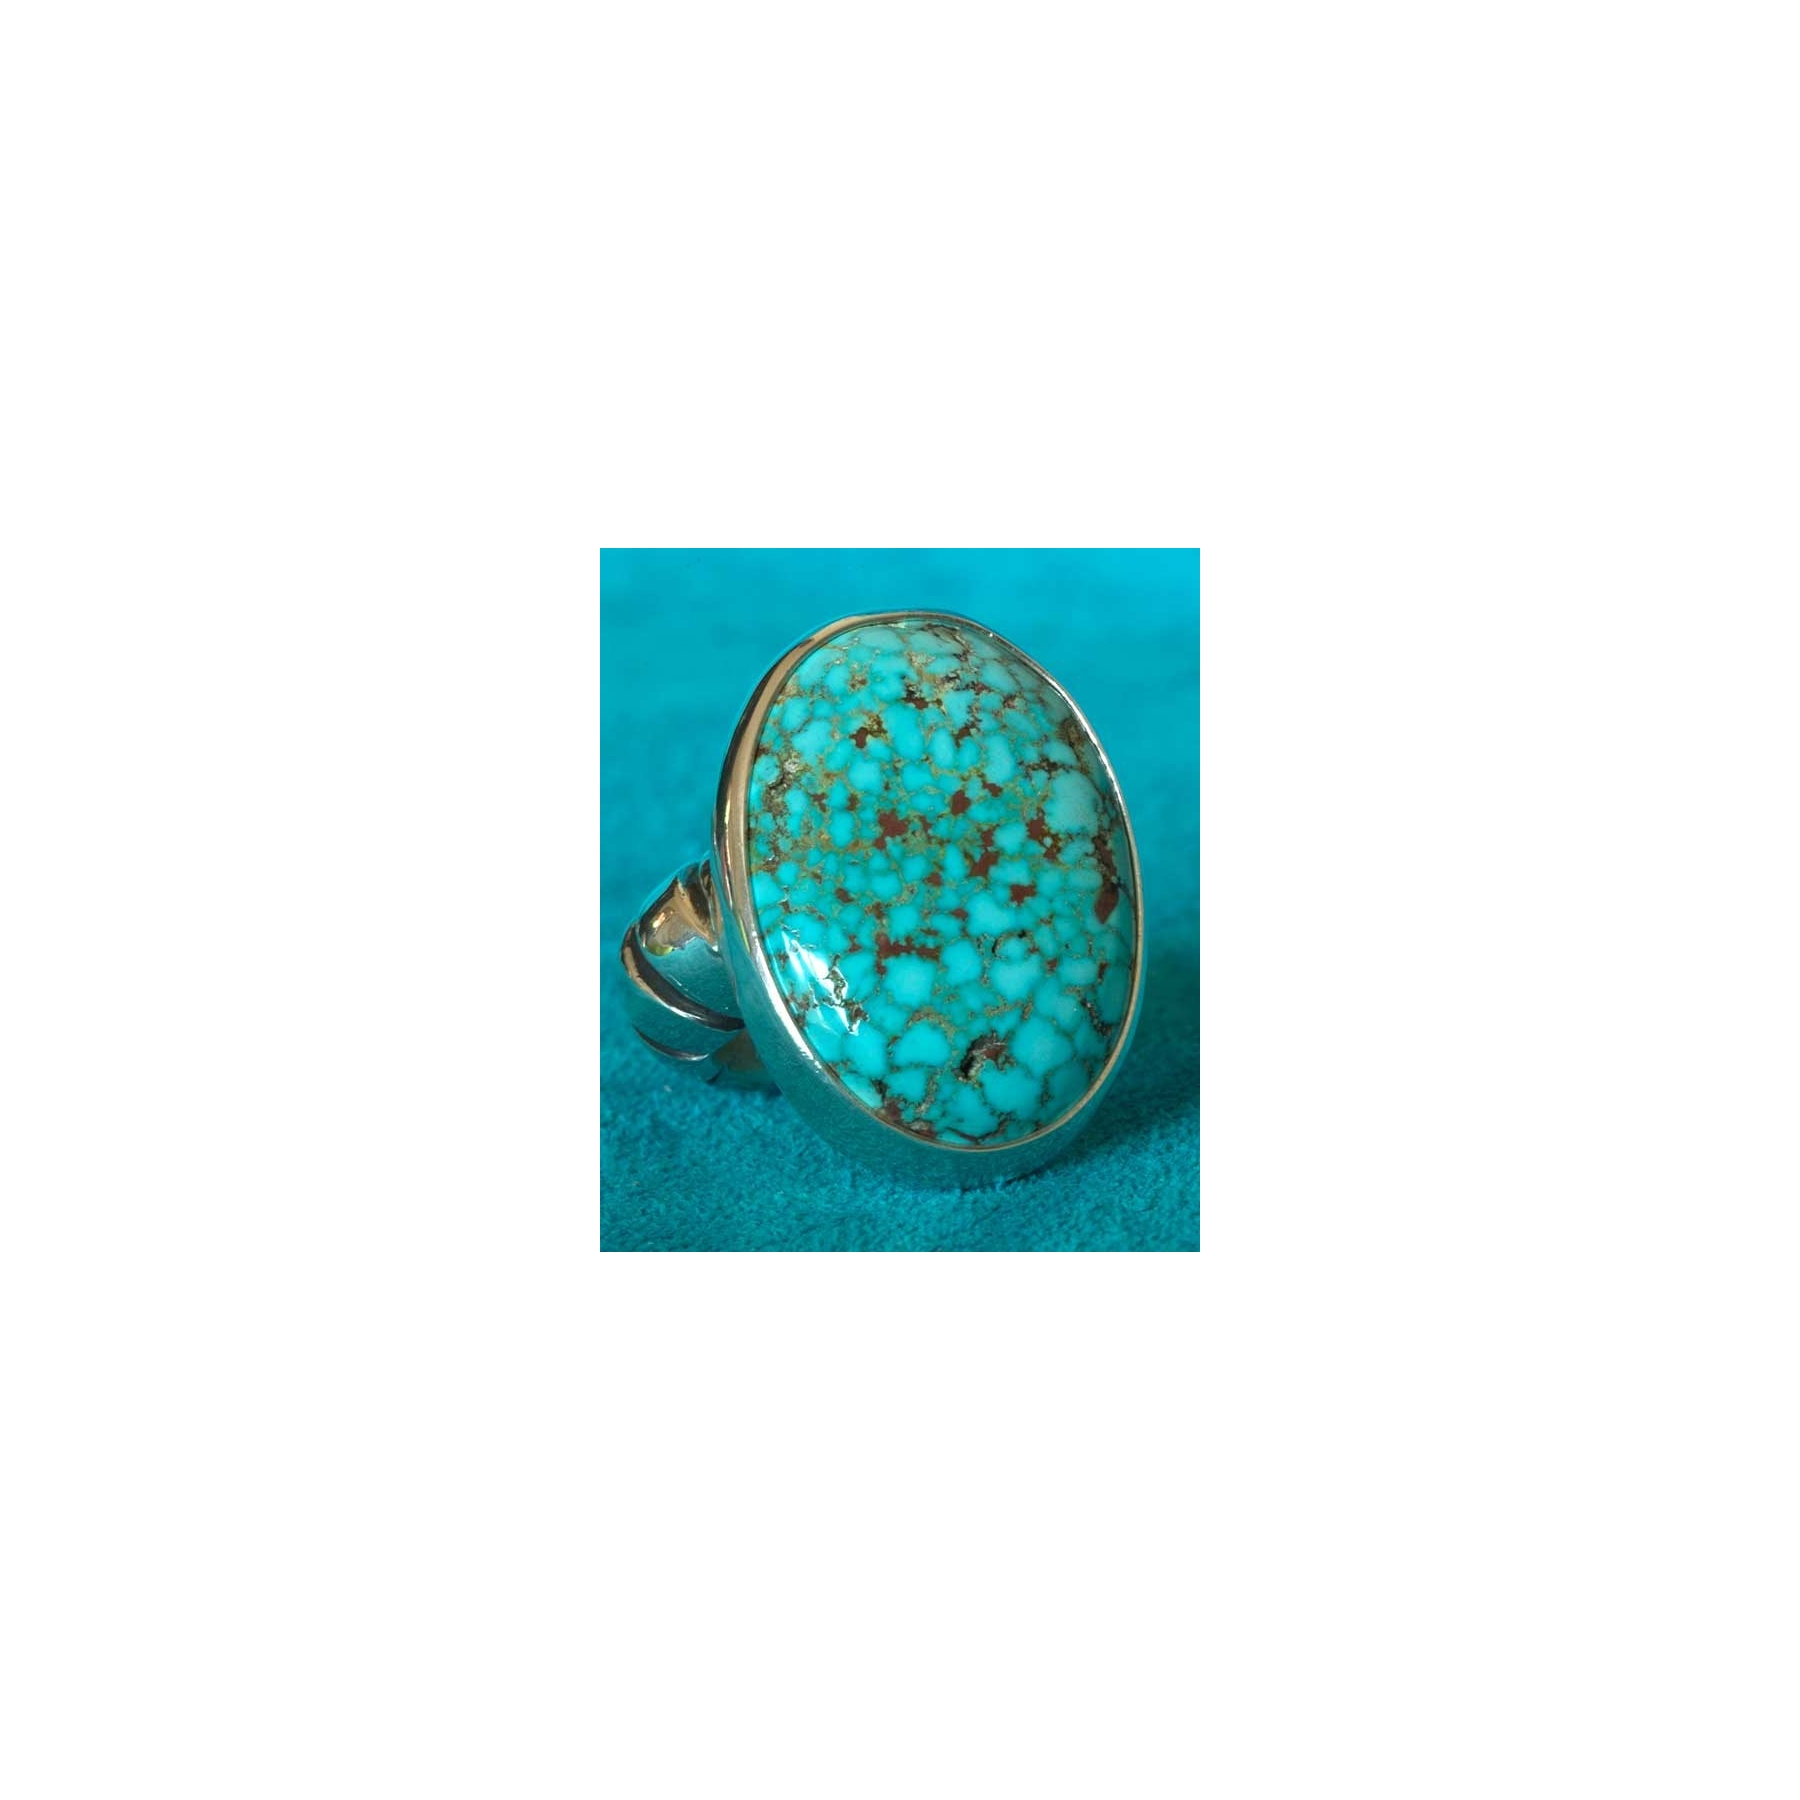 silver img ixlib including sterling trading rb items bell post rjk style turquoise southwestern rings